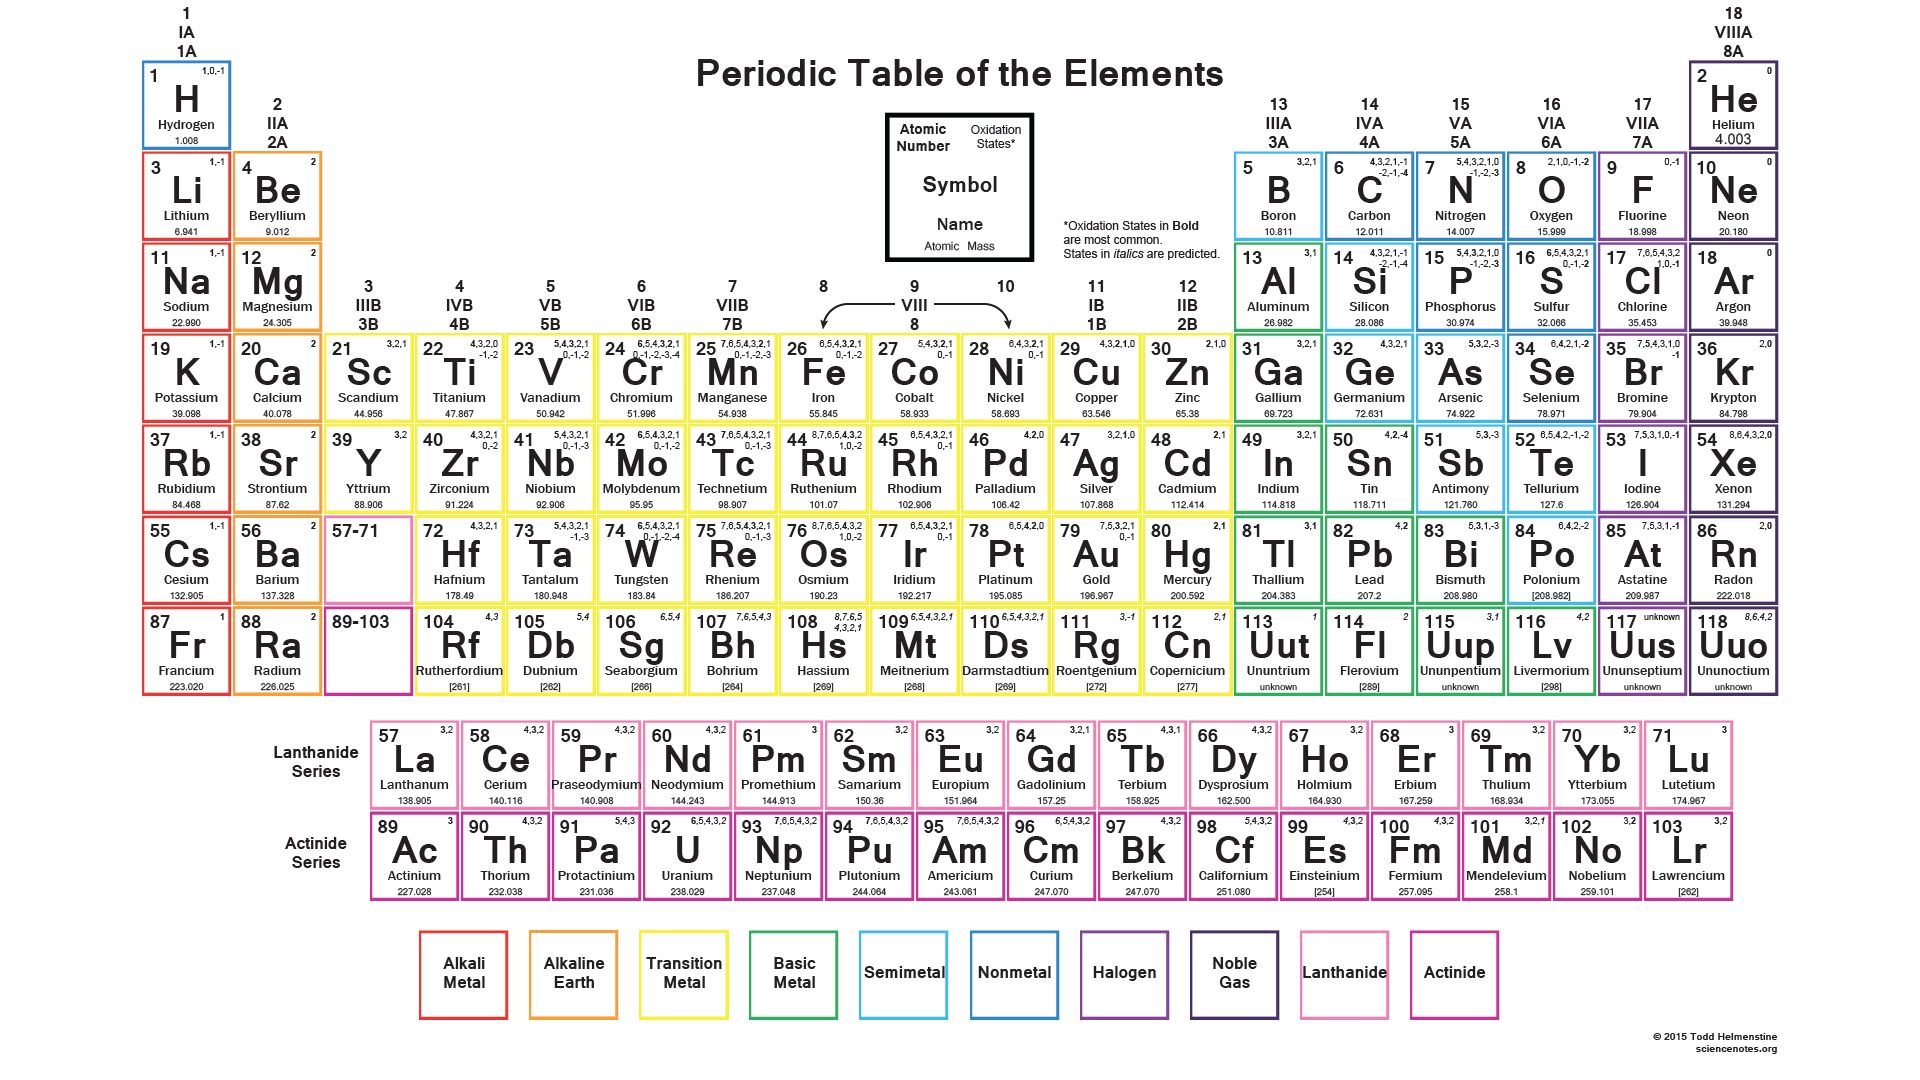 Printable periodic tables for chemistry science notes and projects color periodic table with oxidation states urtaz Images